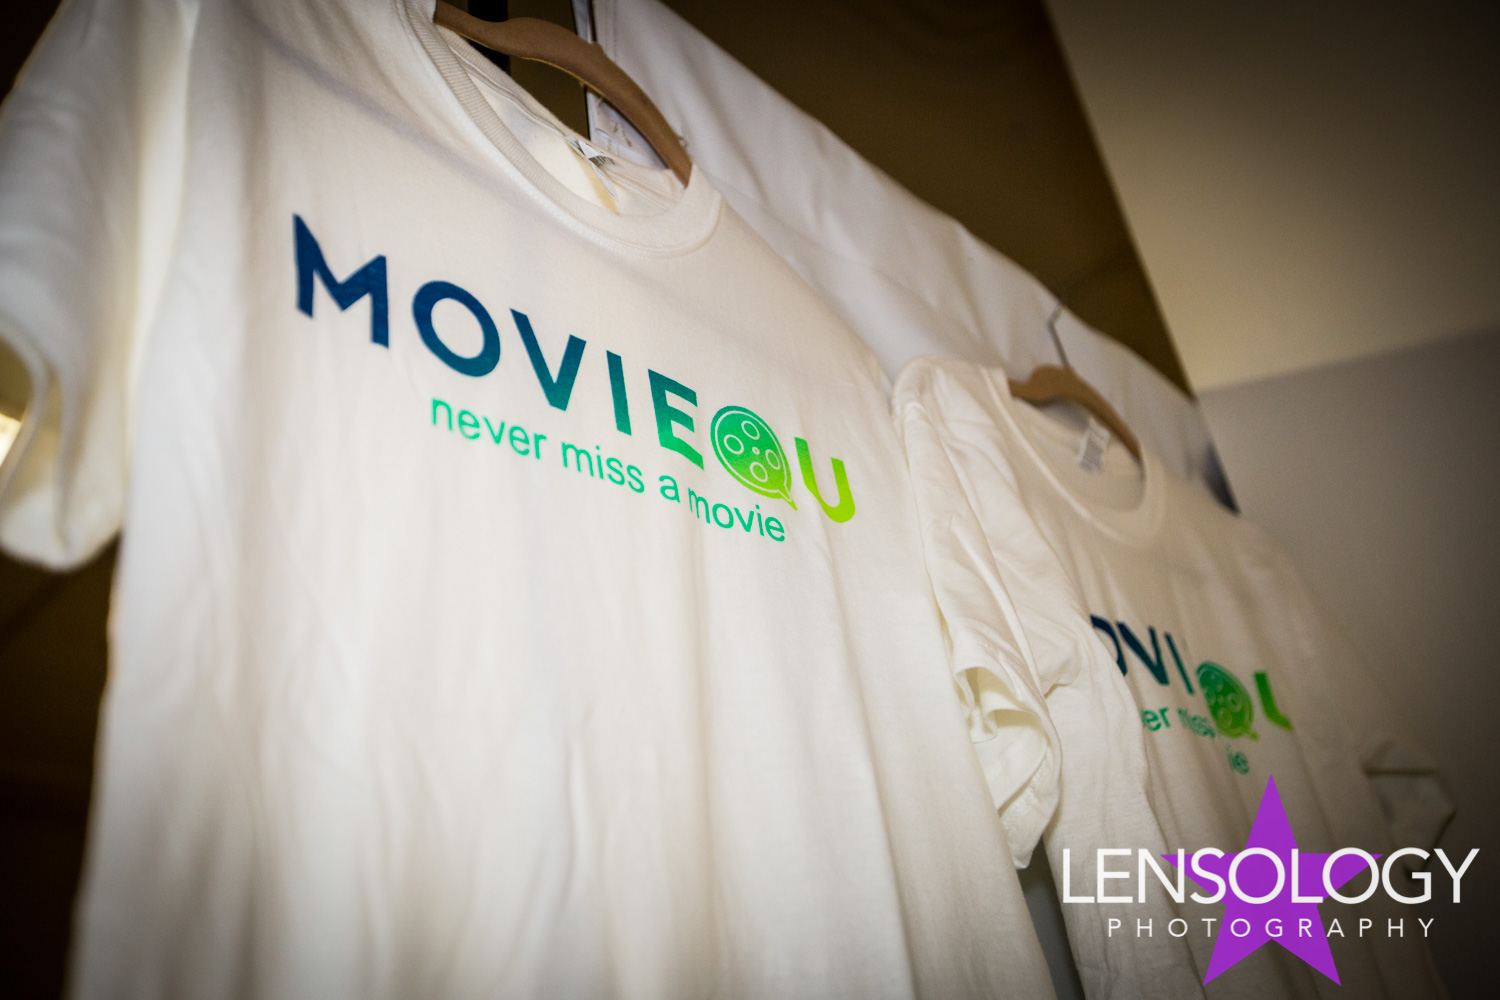 Moviequ photo marketing event